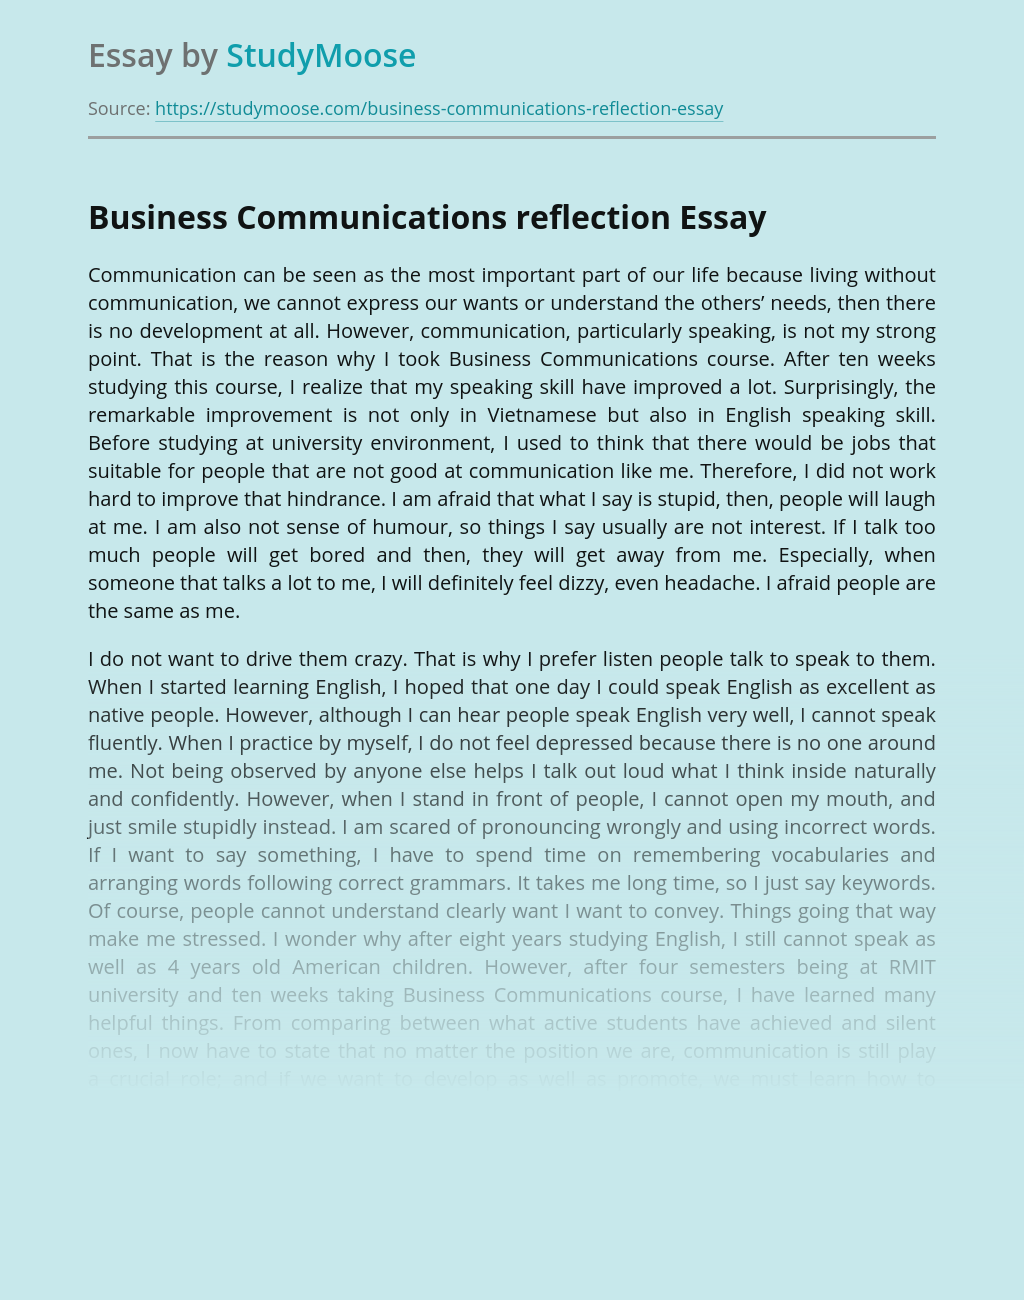 Business Communications reflection